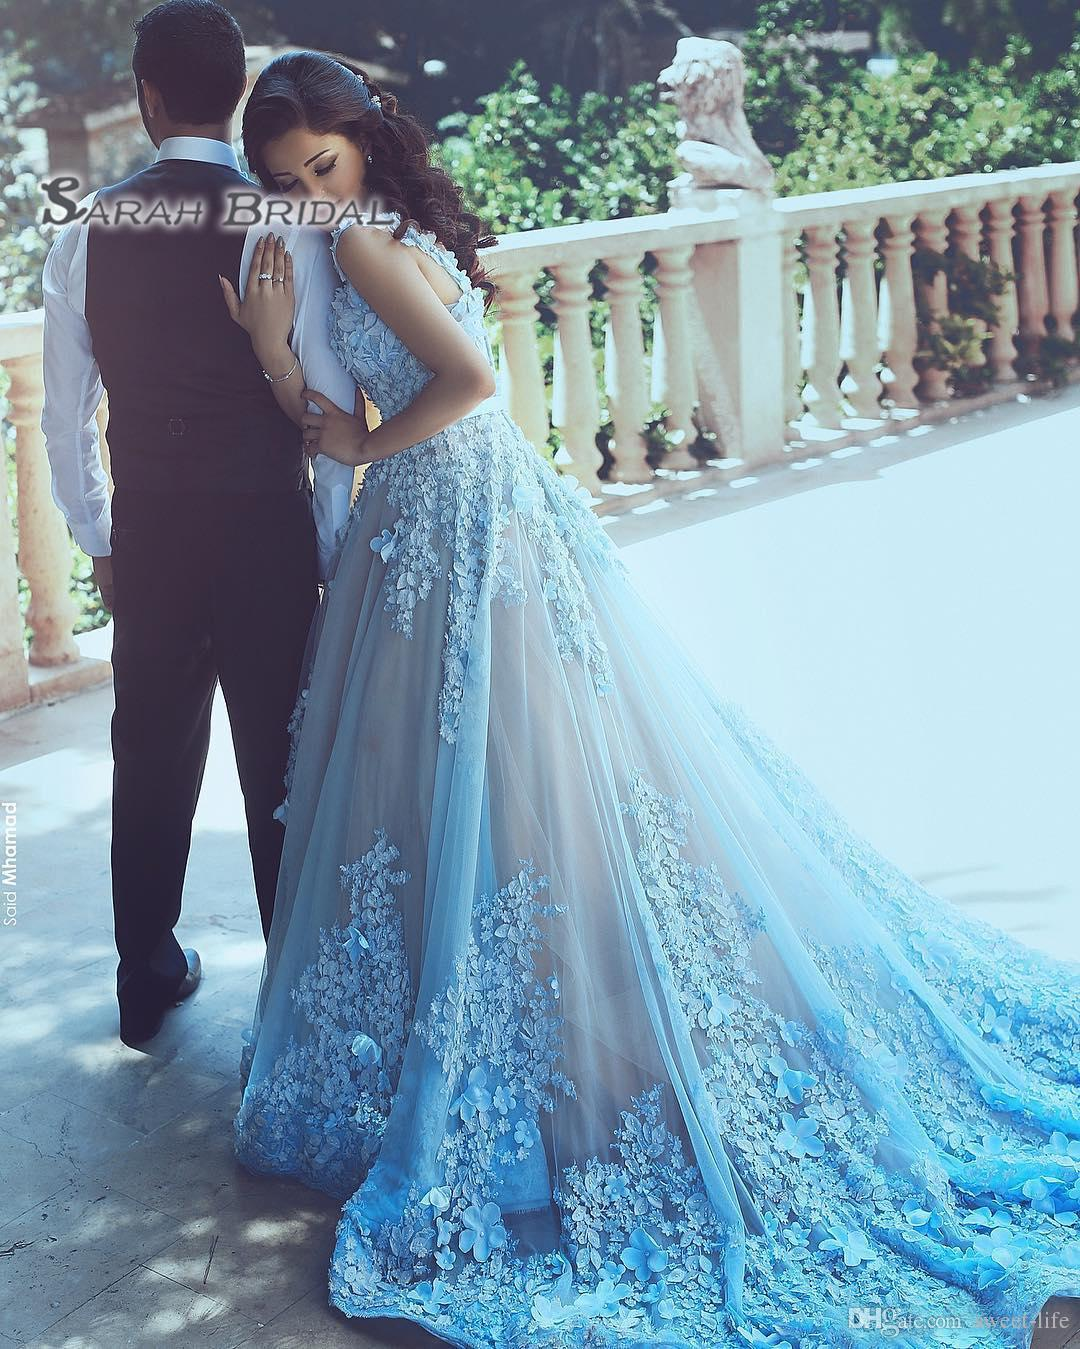 3D Floral Appliques Arabic Women Formal Evening Dresses Sky Blue Tulle Ball Gown Lace Bead 2019 Beautiful Prom Gowns Pageant Dress Plus Size